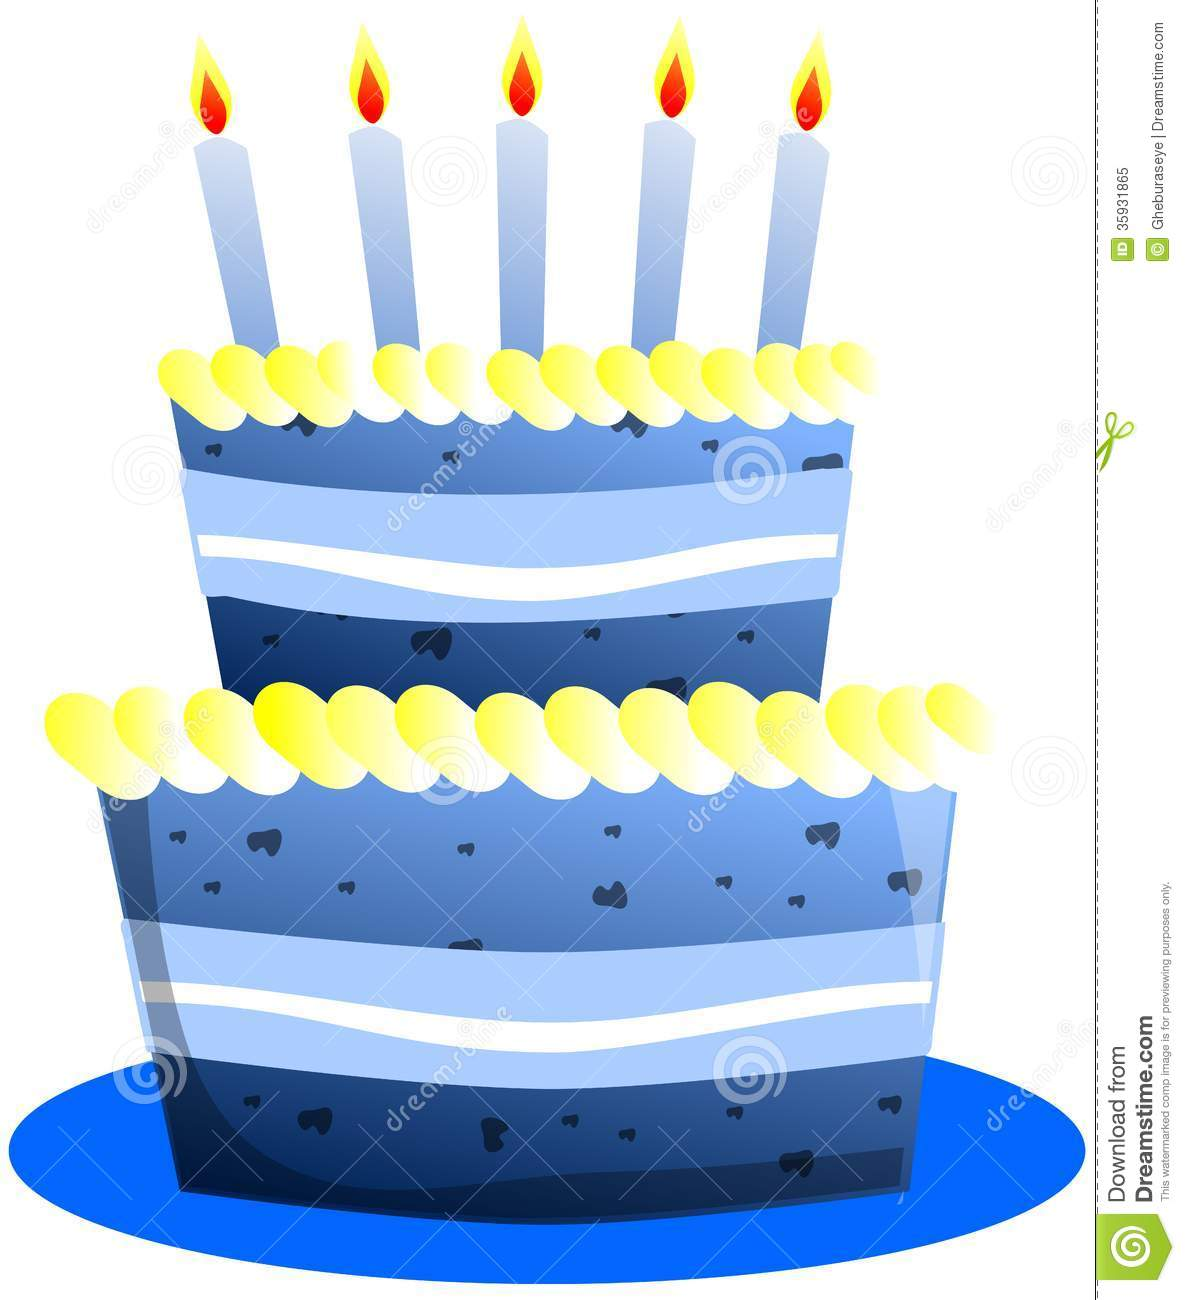 birthday cake with candles animation 9 on birthday cake with candles animation